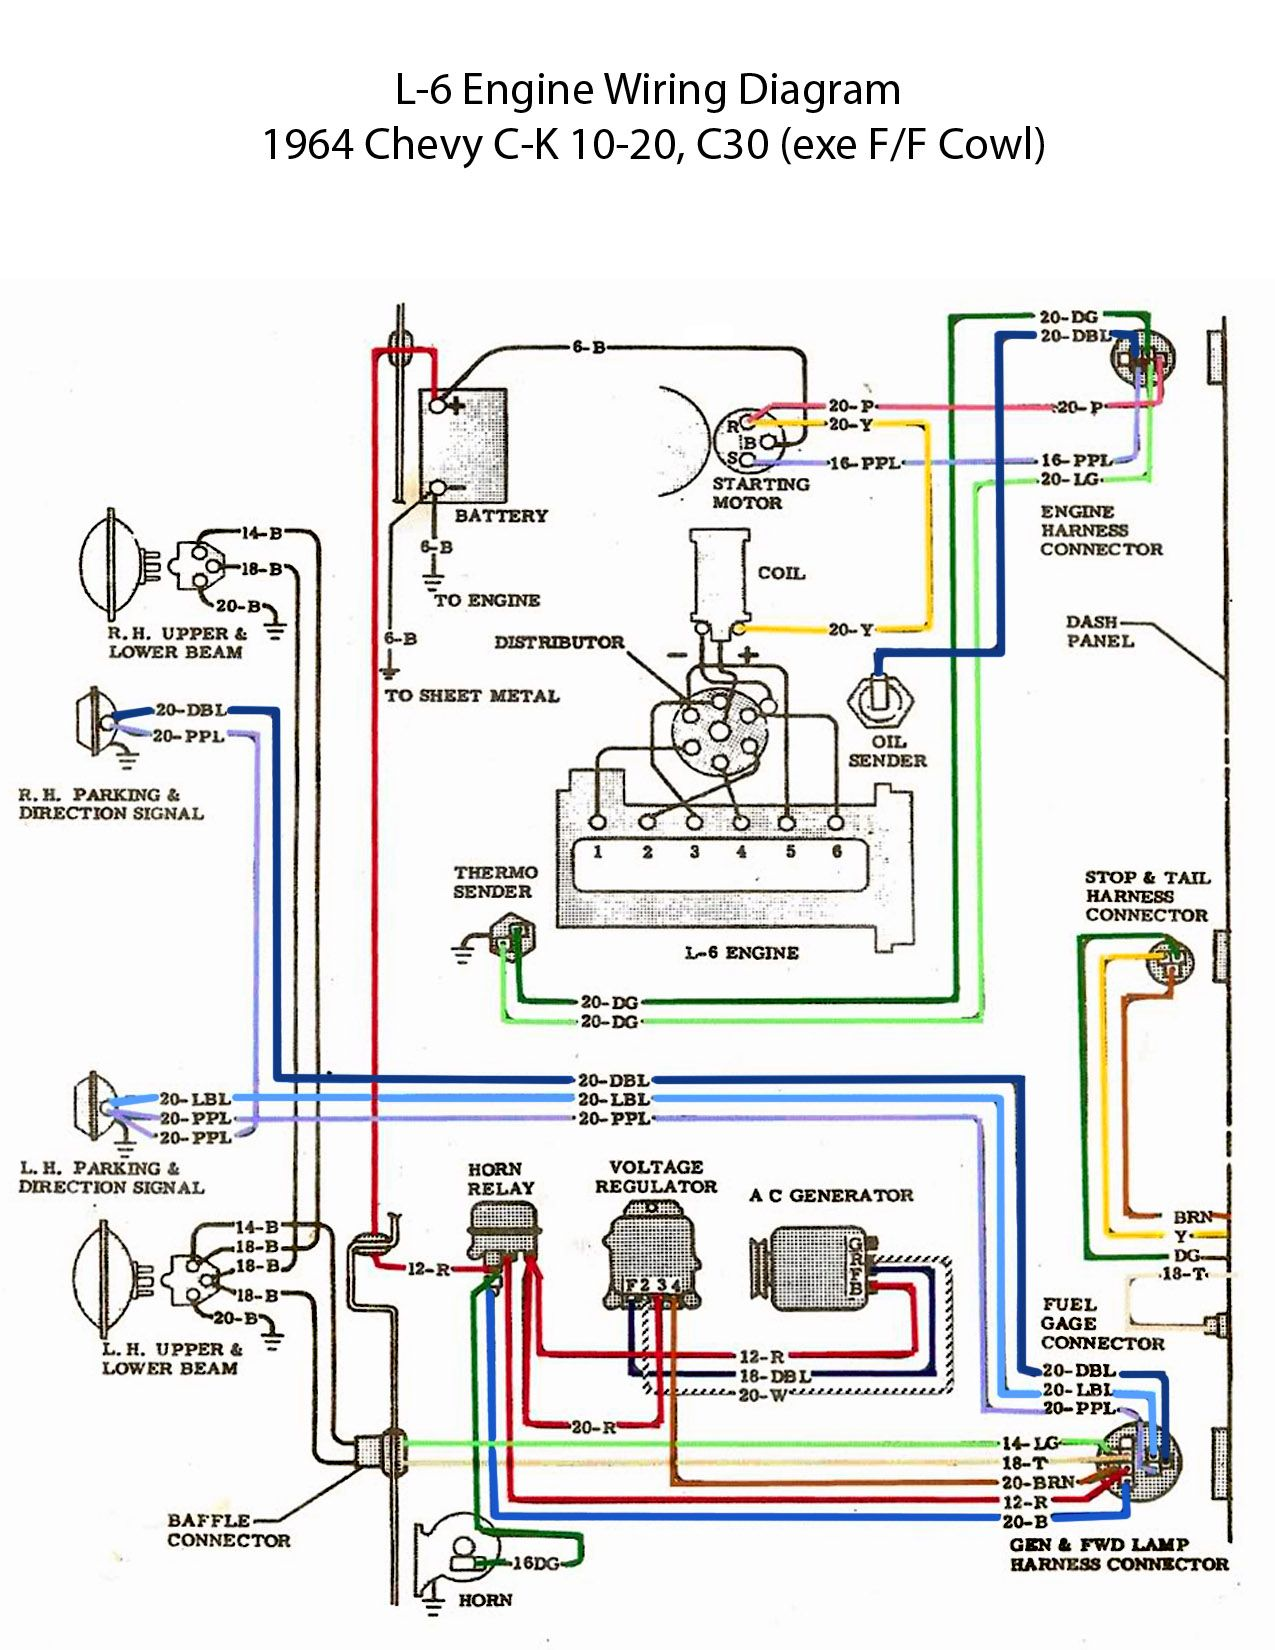 electric l 6 engine wiring diagram 60s chevy c10 wiring rh pinterest com Camaro 3 4 Engine Diagram Camaro 3 4 Engine Diagram